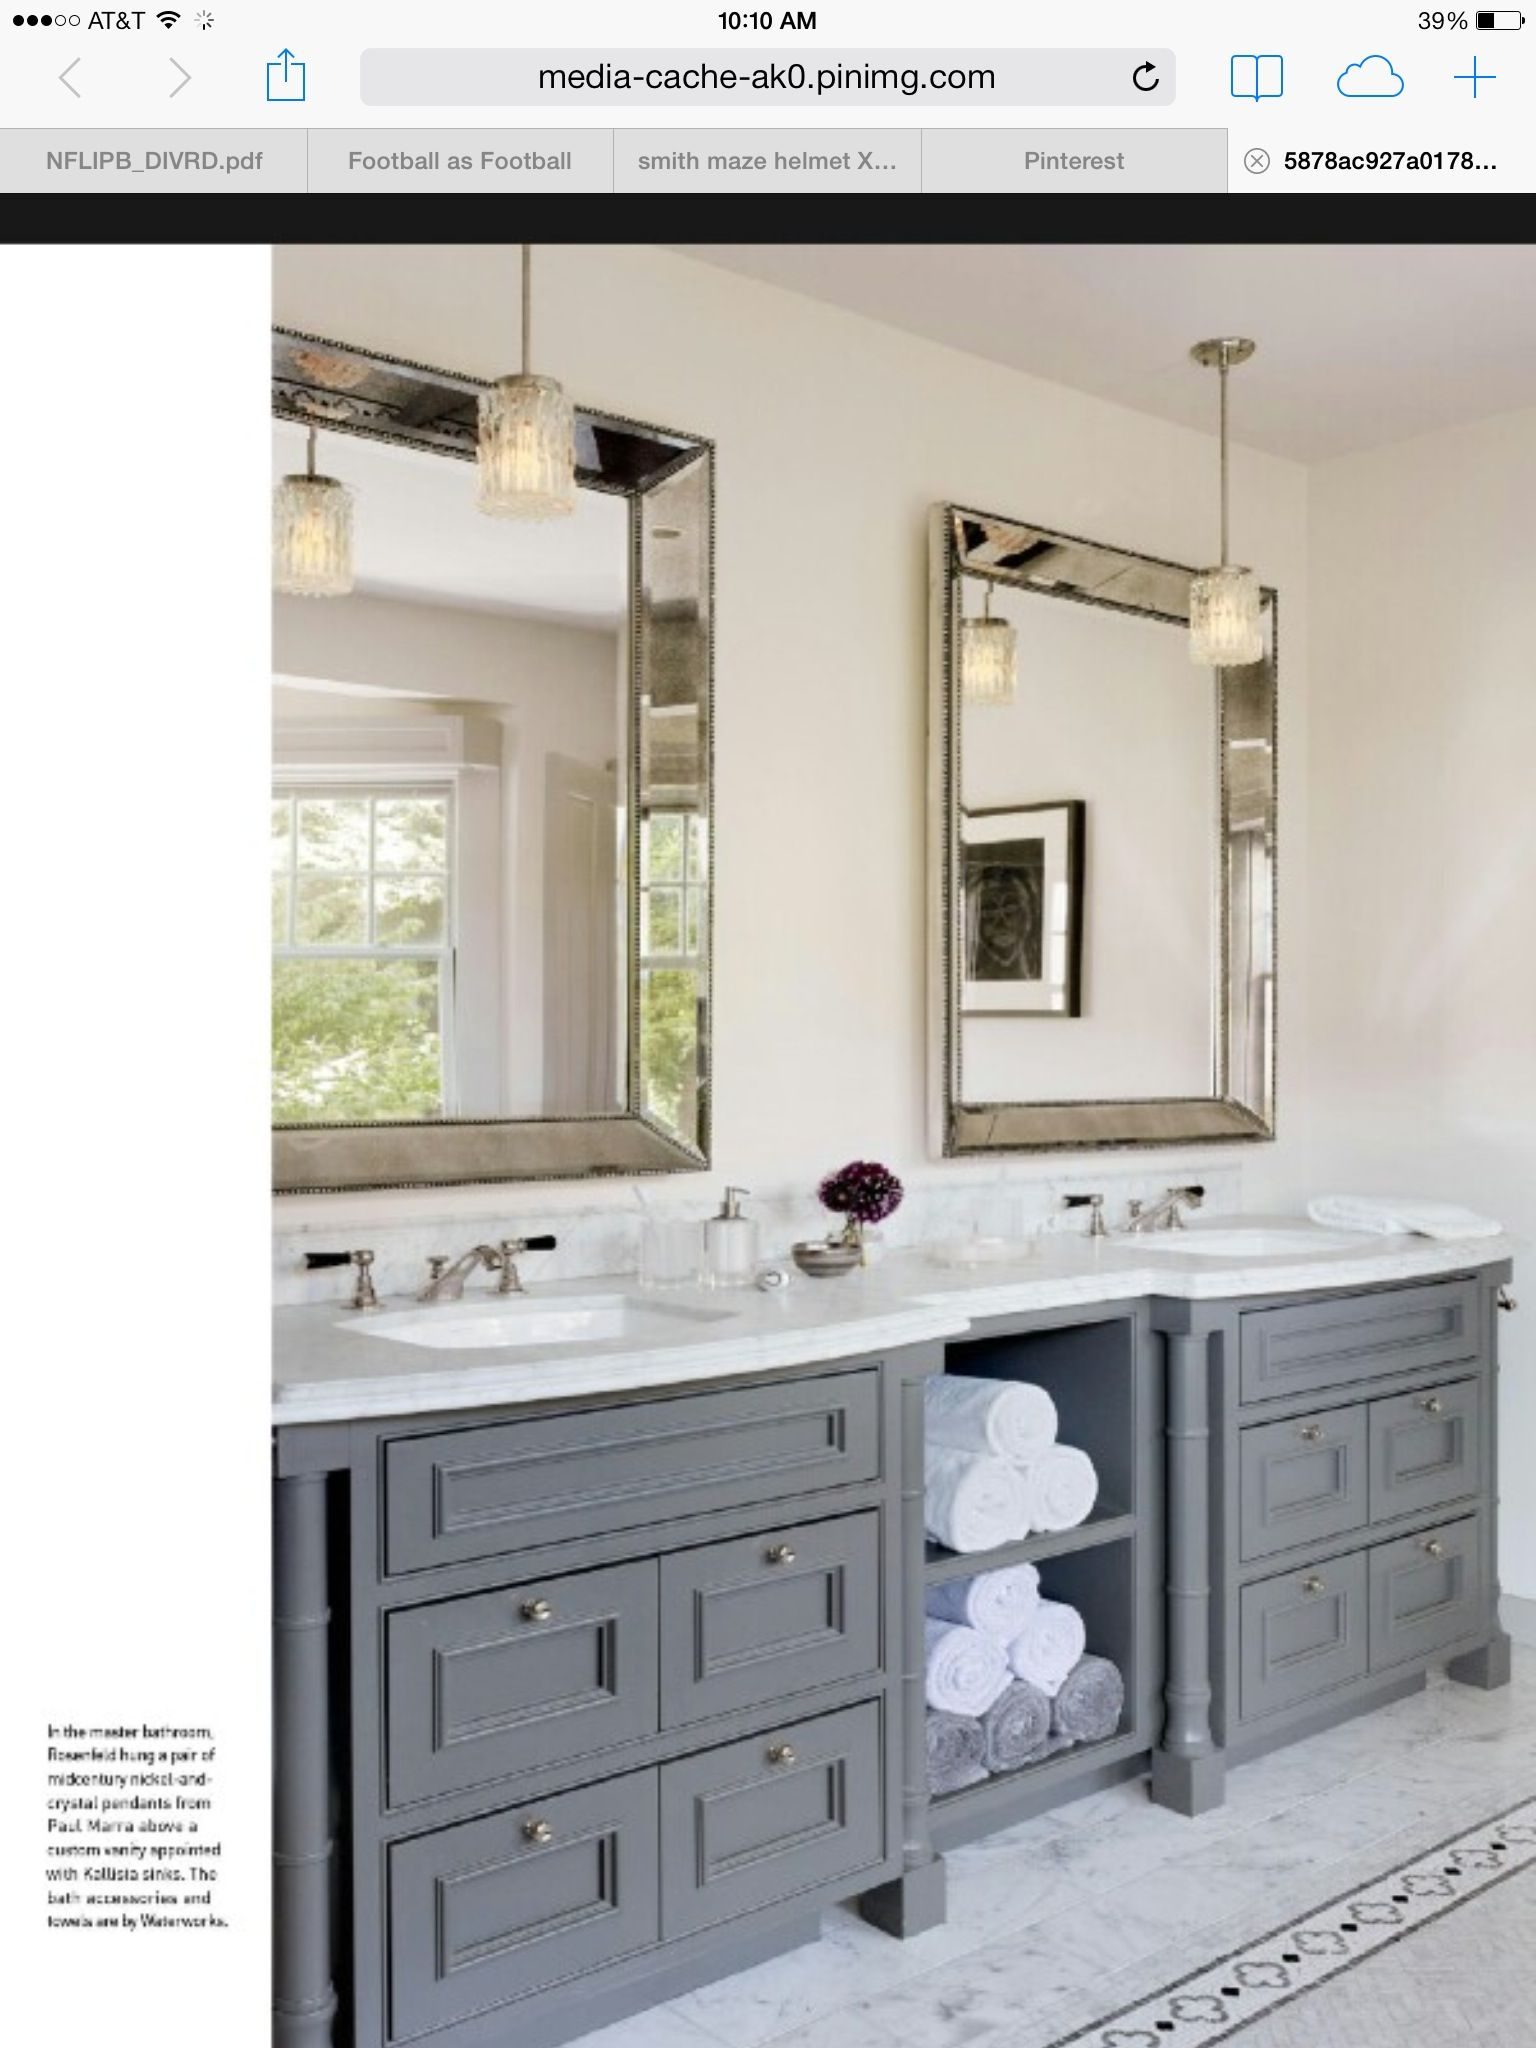 Basement finishing ideas bathroom mirror master - Small bathroom vanity mirror ideas ...